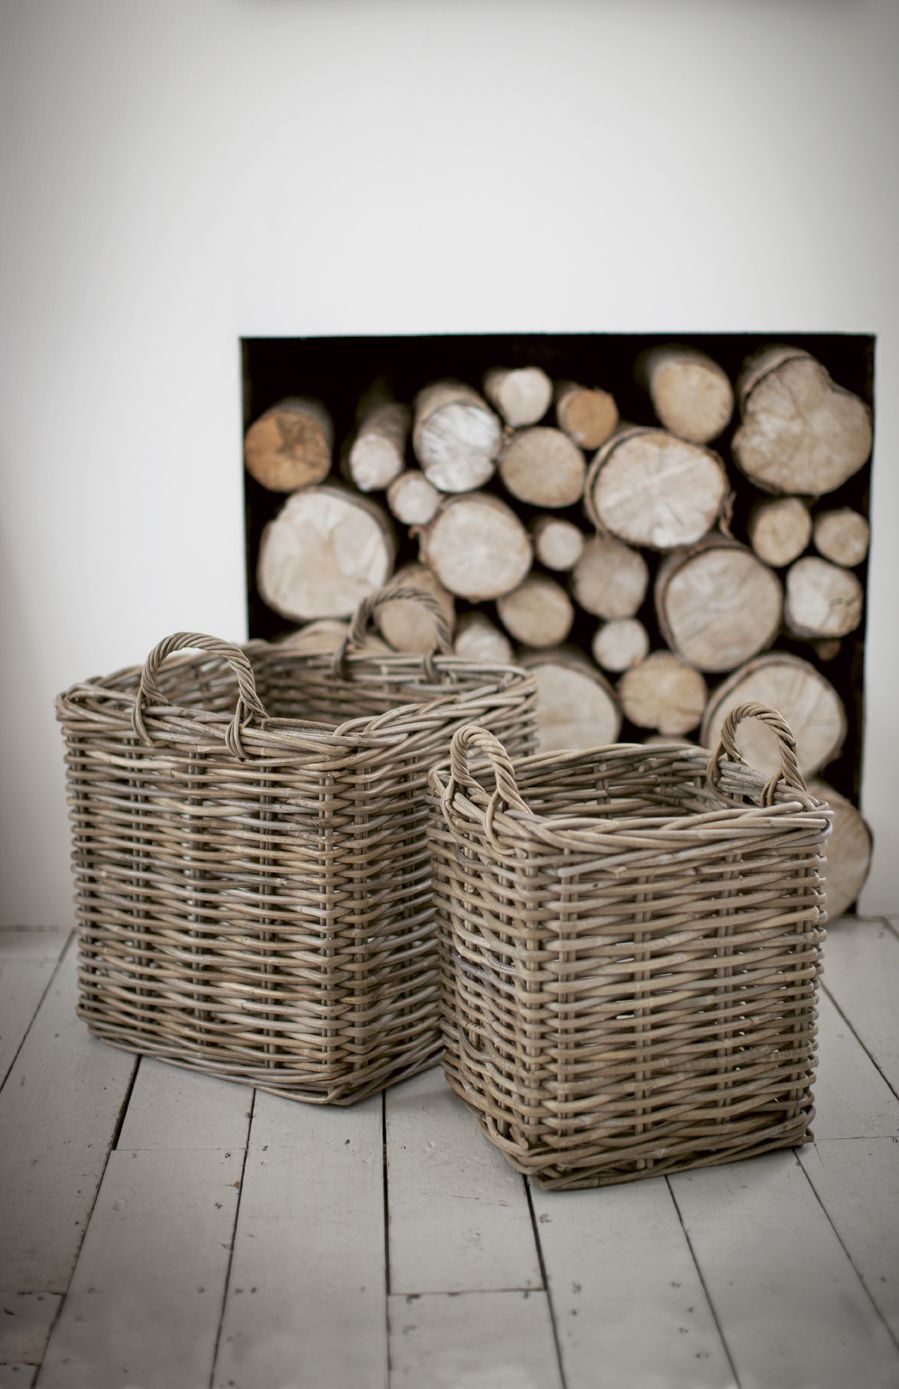 Square log baskets by The Olive Tree wwwtheolivetreeshopcouk